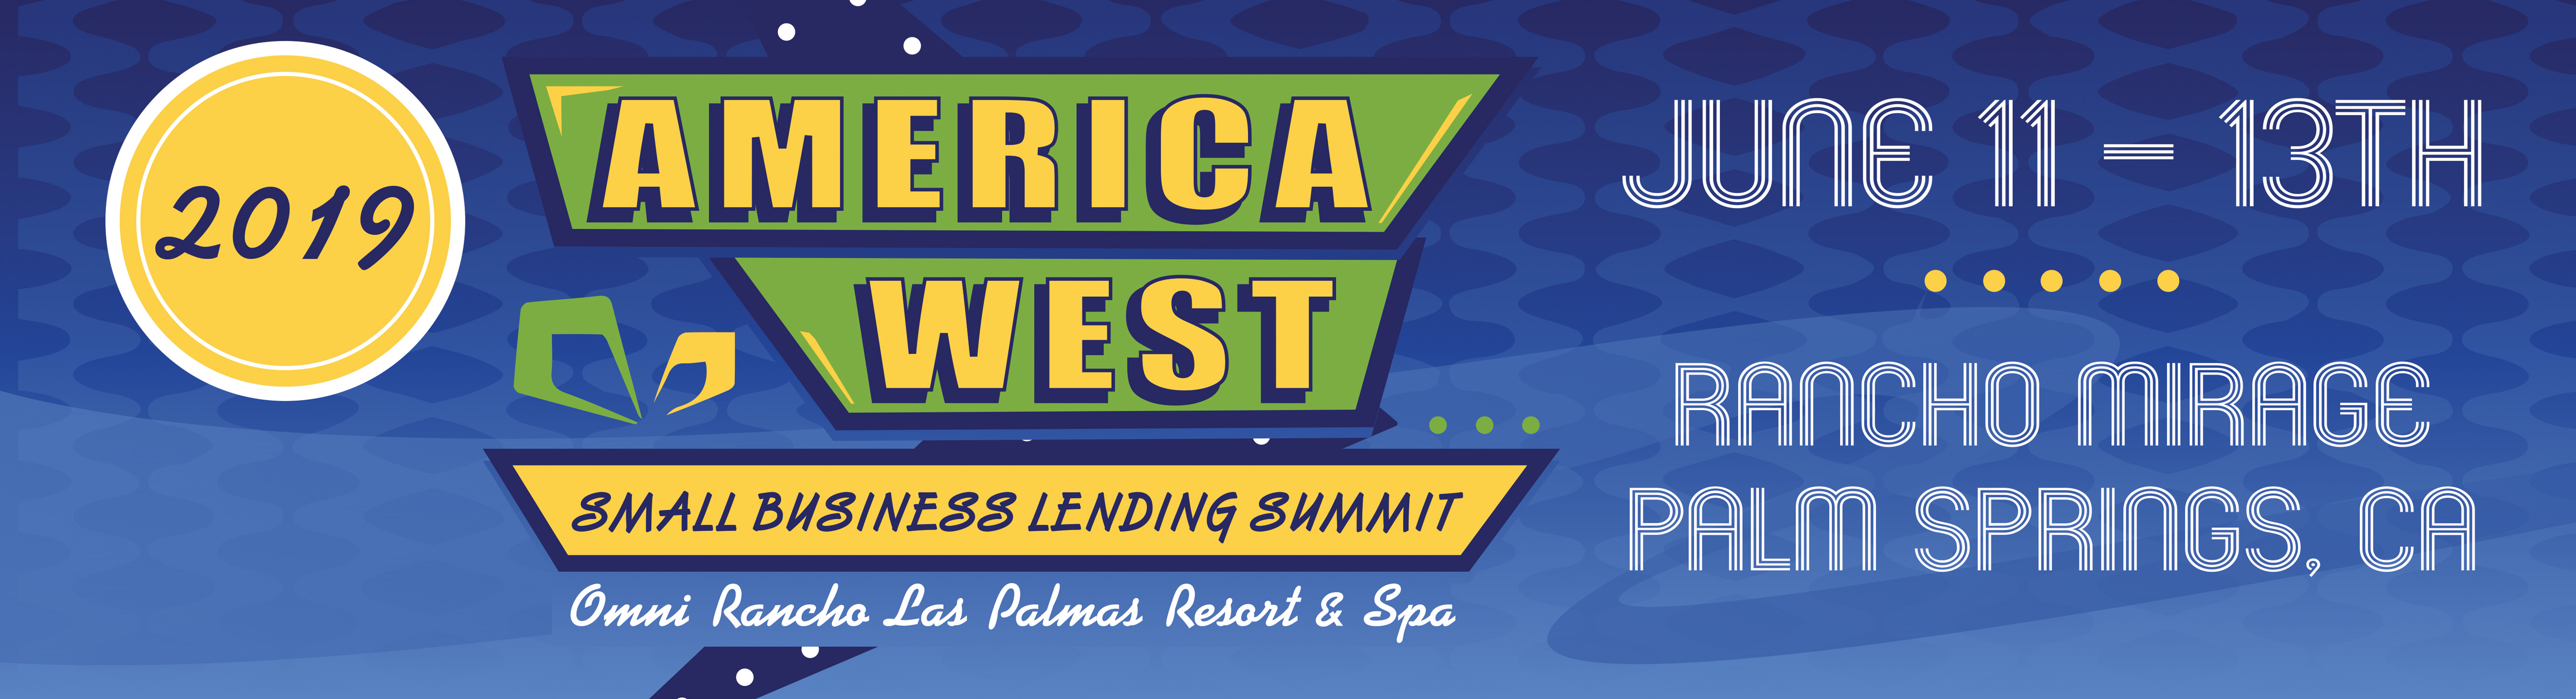 America West Small Business Lending Summit 2019